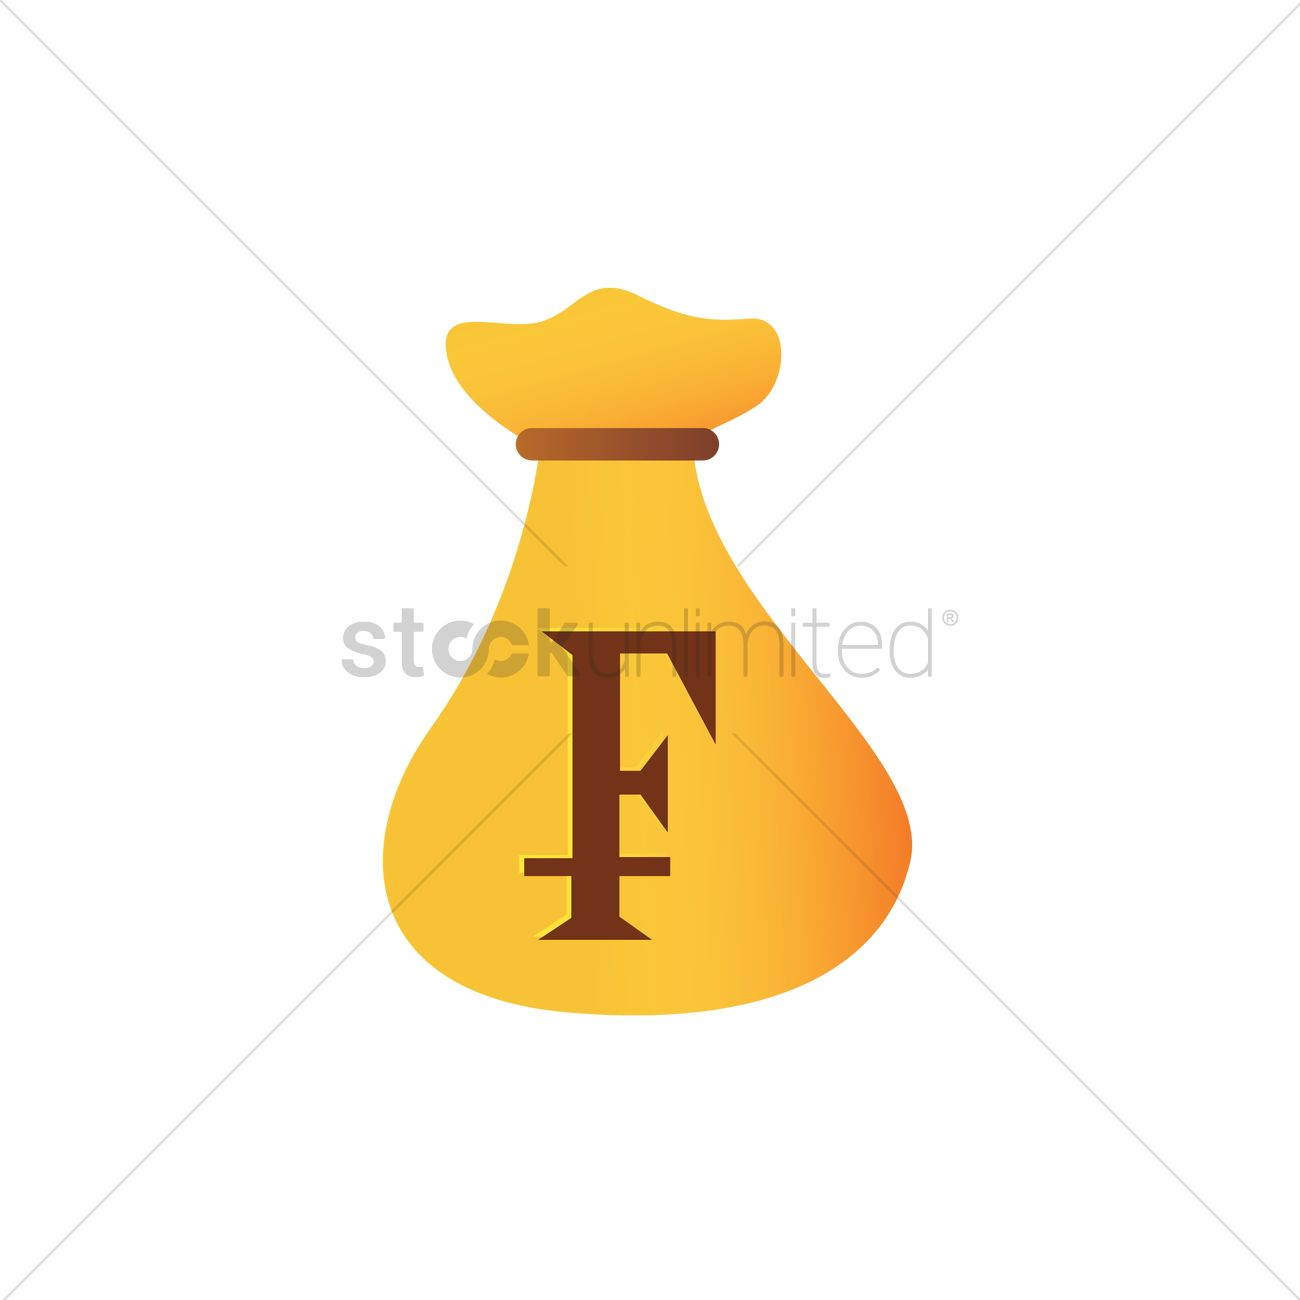 Swiss franc money bag vector image 2033992 stockunlimited swiss franc money bag vector graphic buycottarizona Images